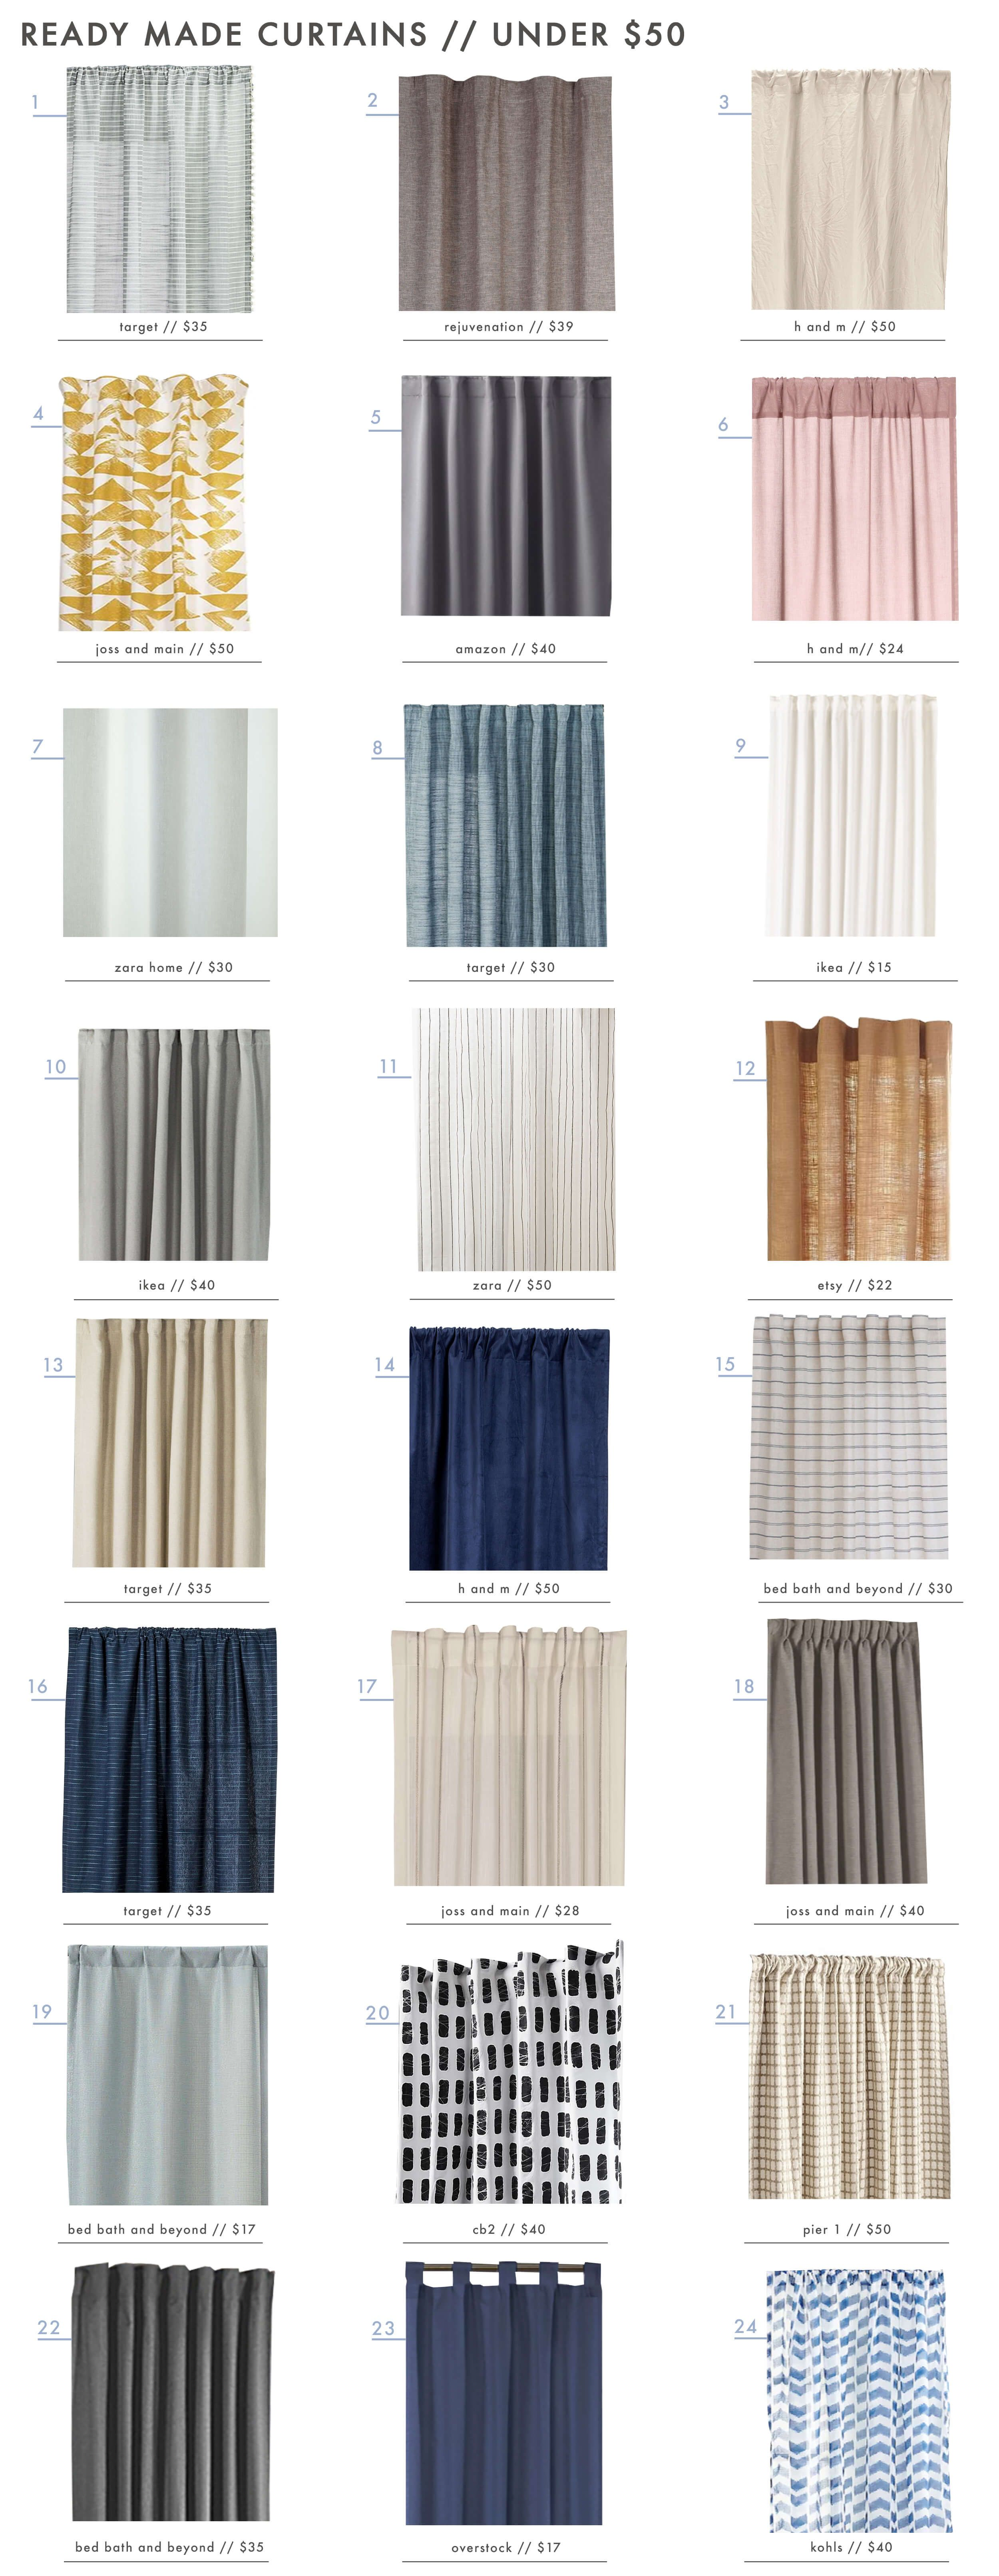 Bed bath and beyond window shades  hanging curtains all wrong  hanging curtains window and room